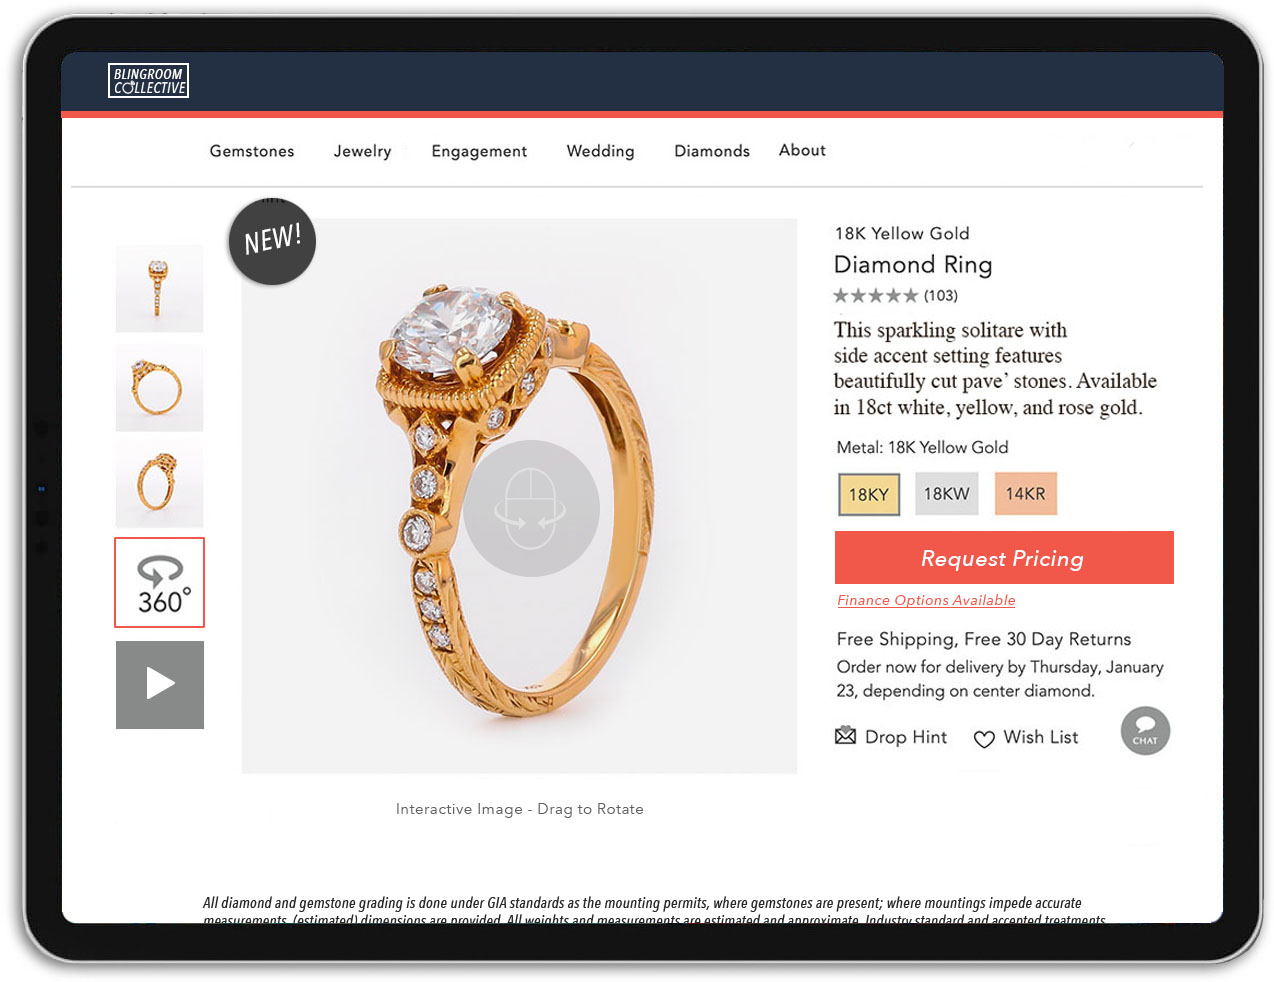 ortery-ecommerce-jewelry-photography-photography-system-ipad-mobile-mockup-standing-ring-360-mockup